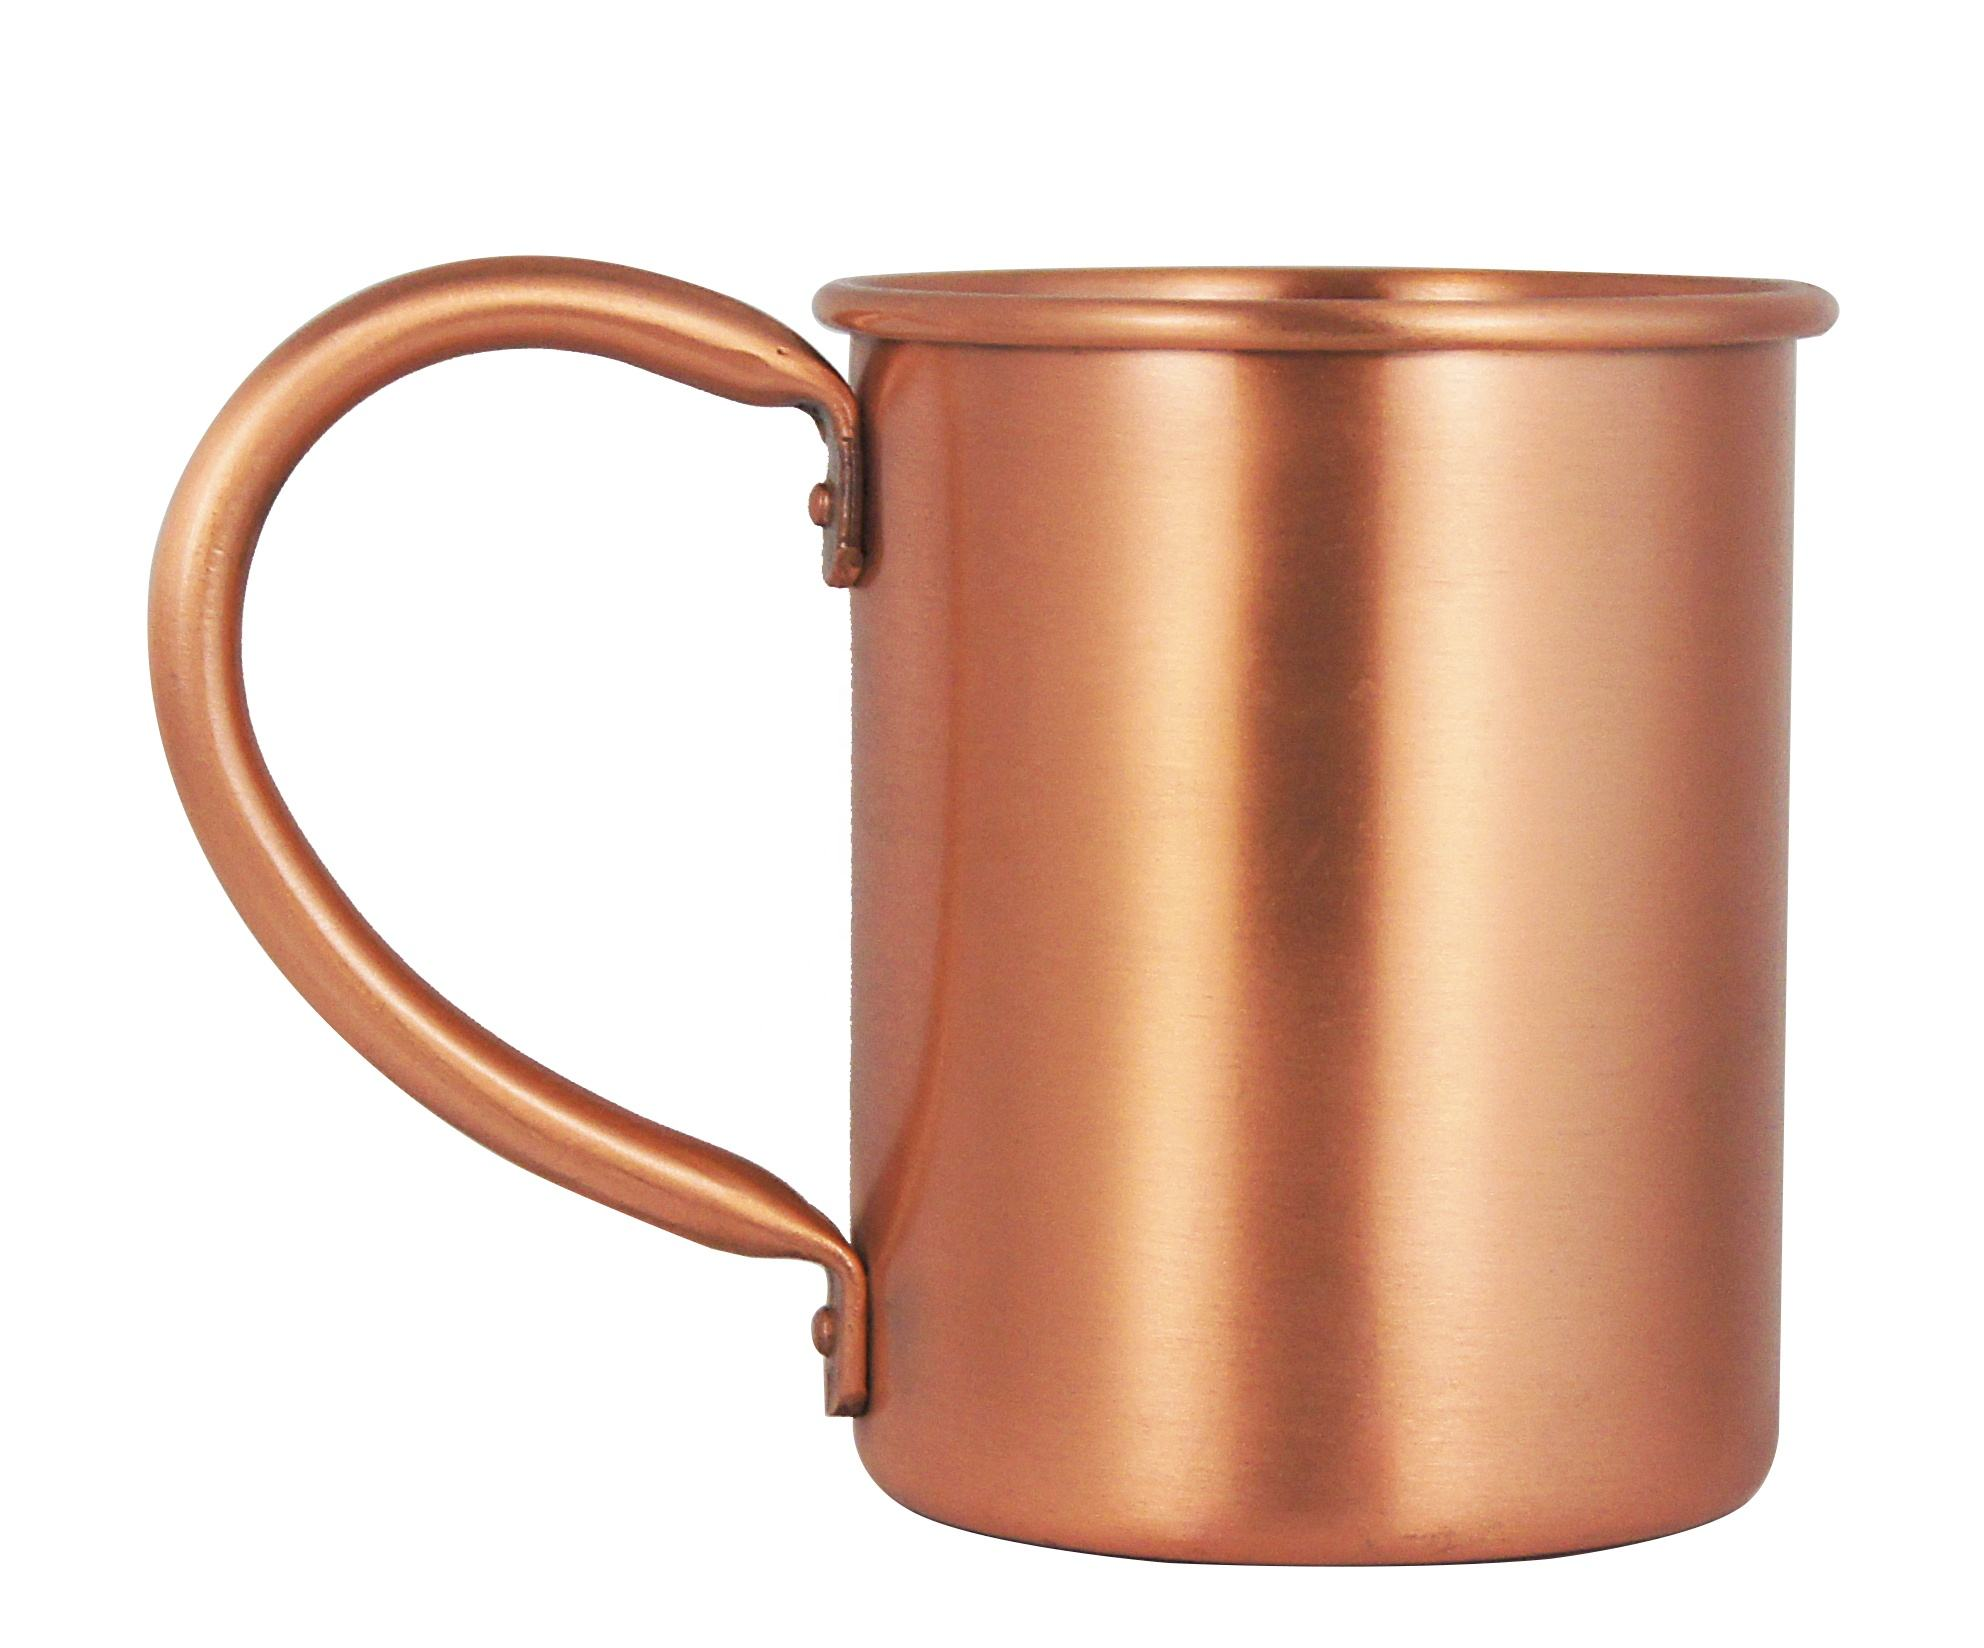 Moscow mule 100% reinem <span class=keywords><strong>kupfer</strong></span> <span class=keywords><strong>becher</strong></span> 14 Unzen <span class=keywords><strong>kupfer</strong></span> tasse